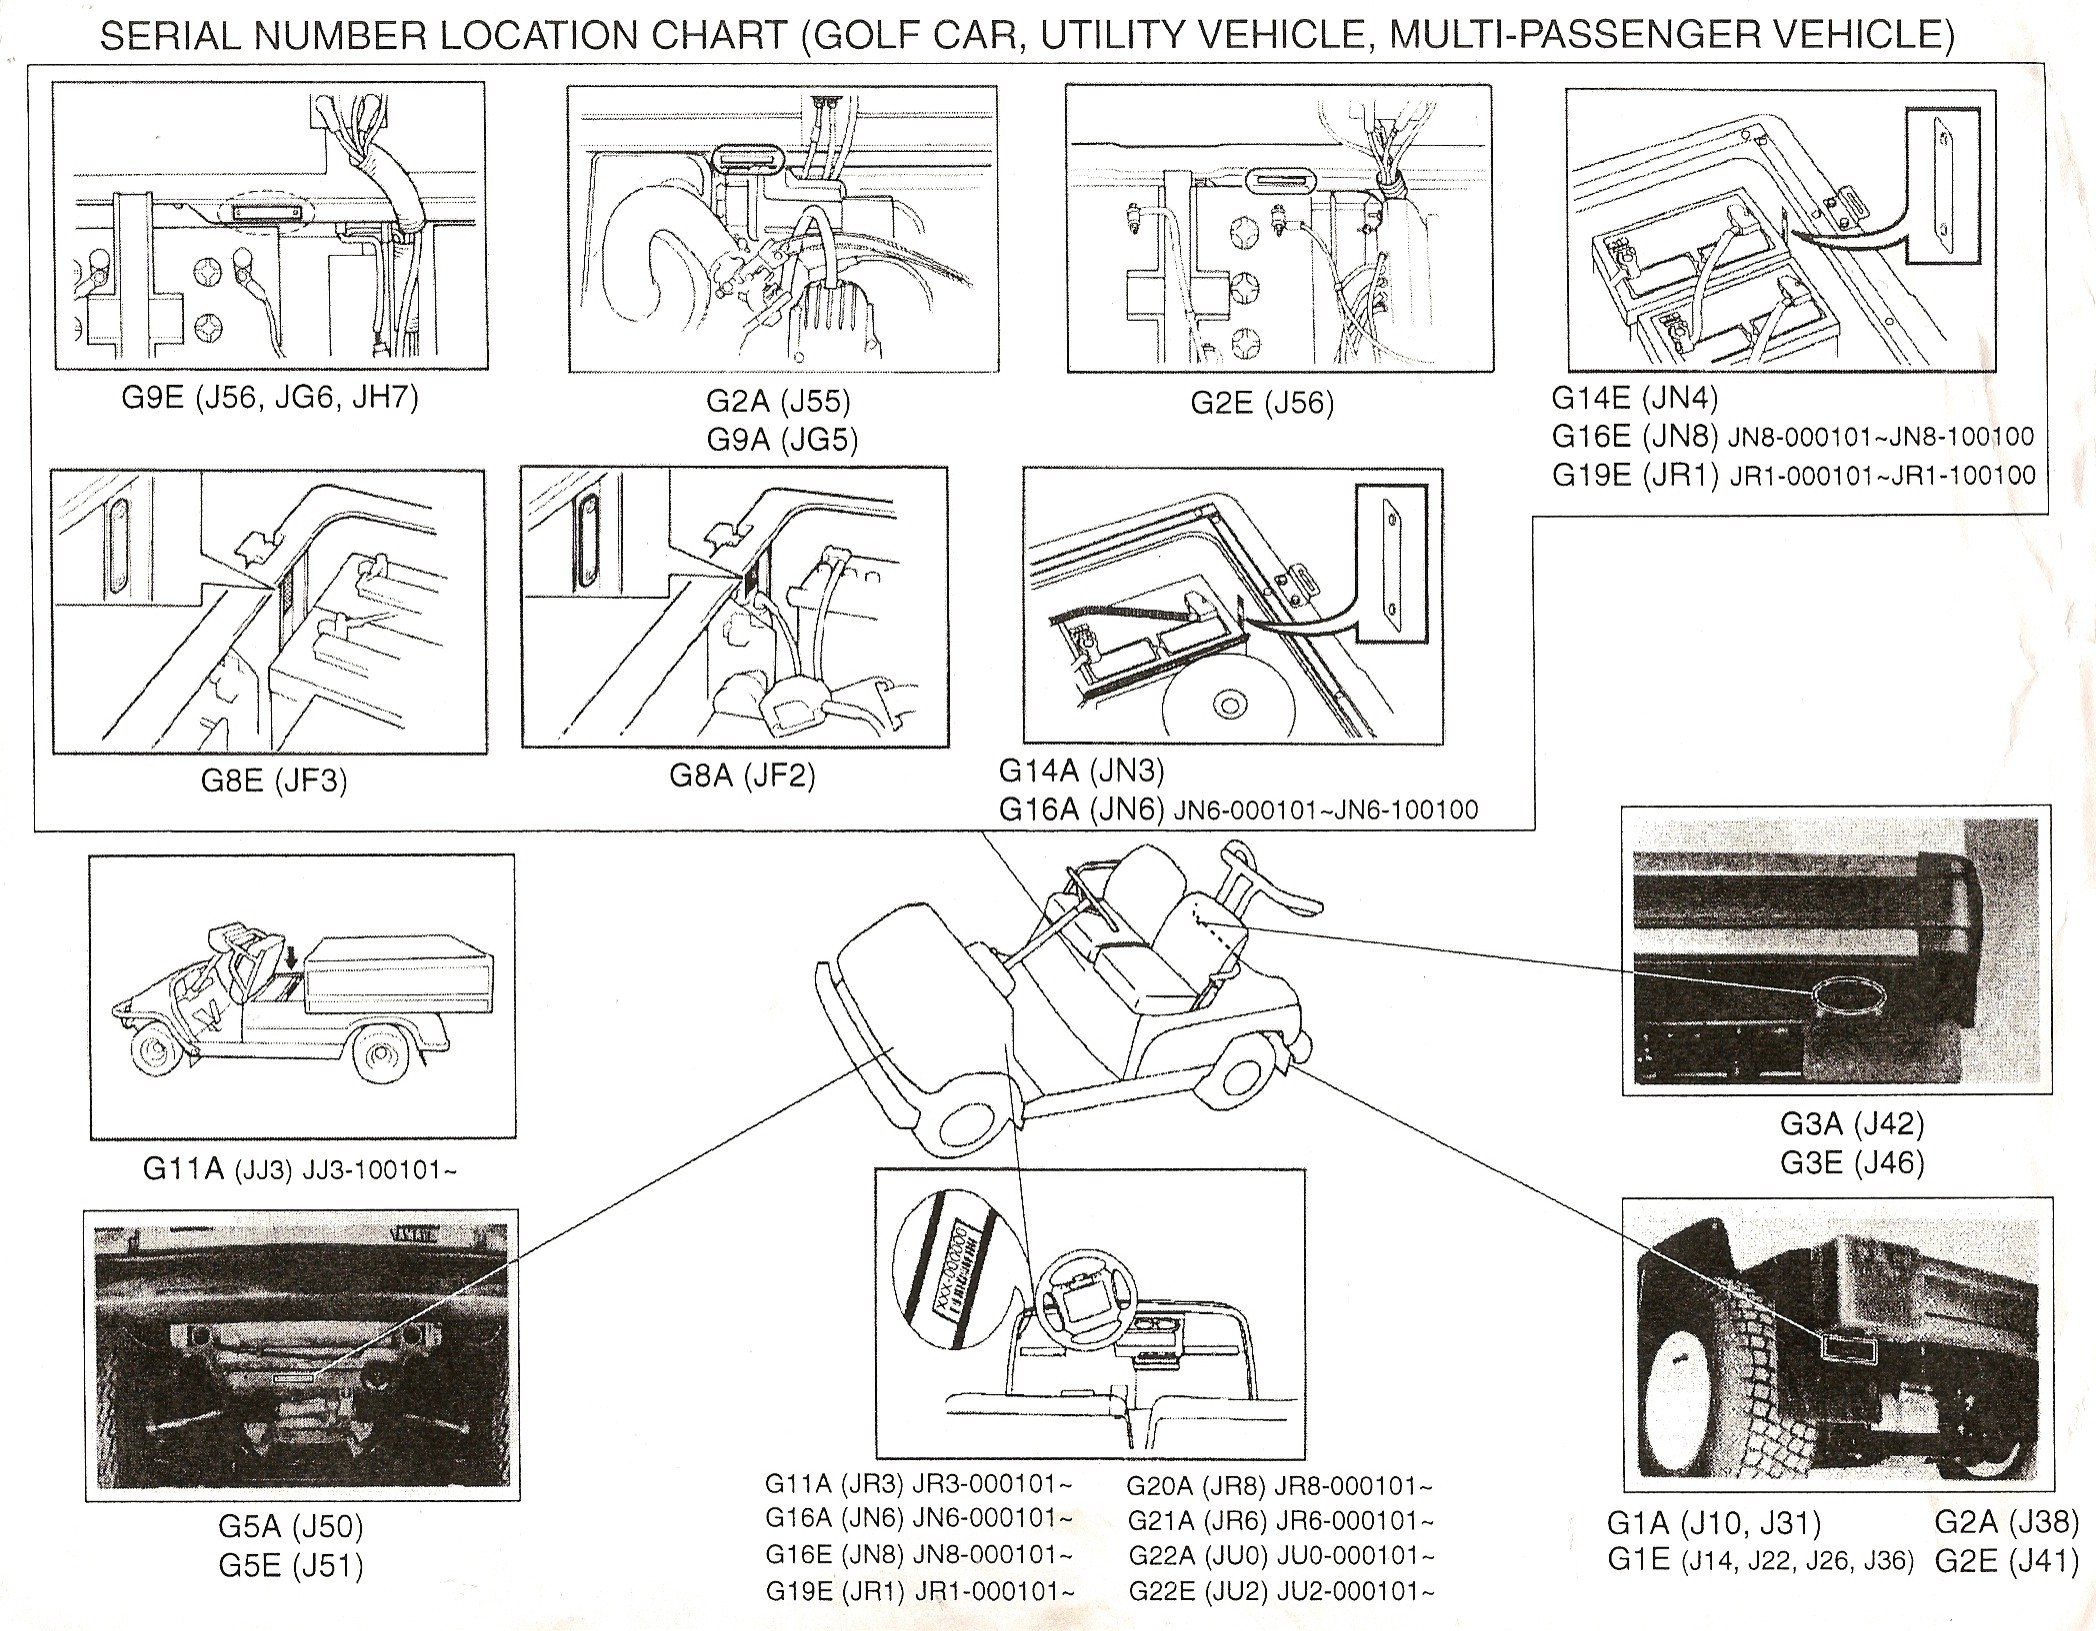 Yamaha Golf Cart Engine Number Identification Wiring Diagram G16 Elc What Year Is Serial Guide 2096x1631